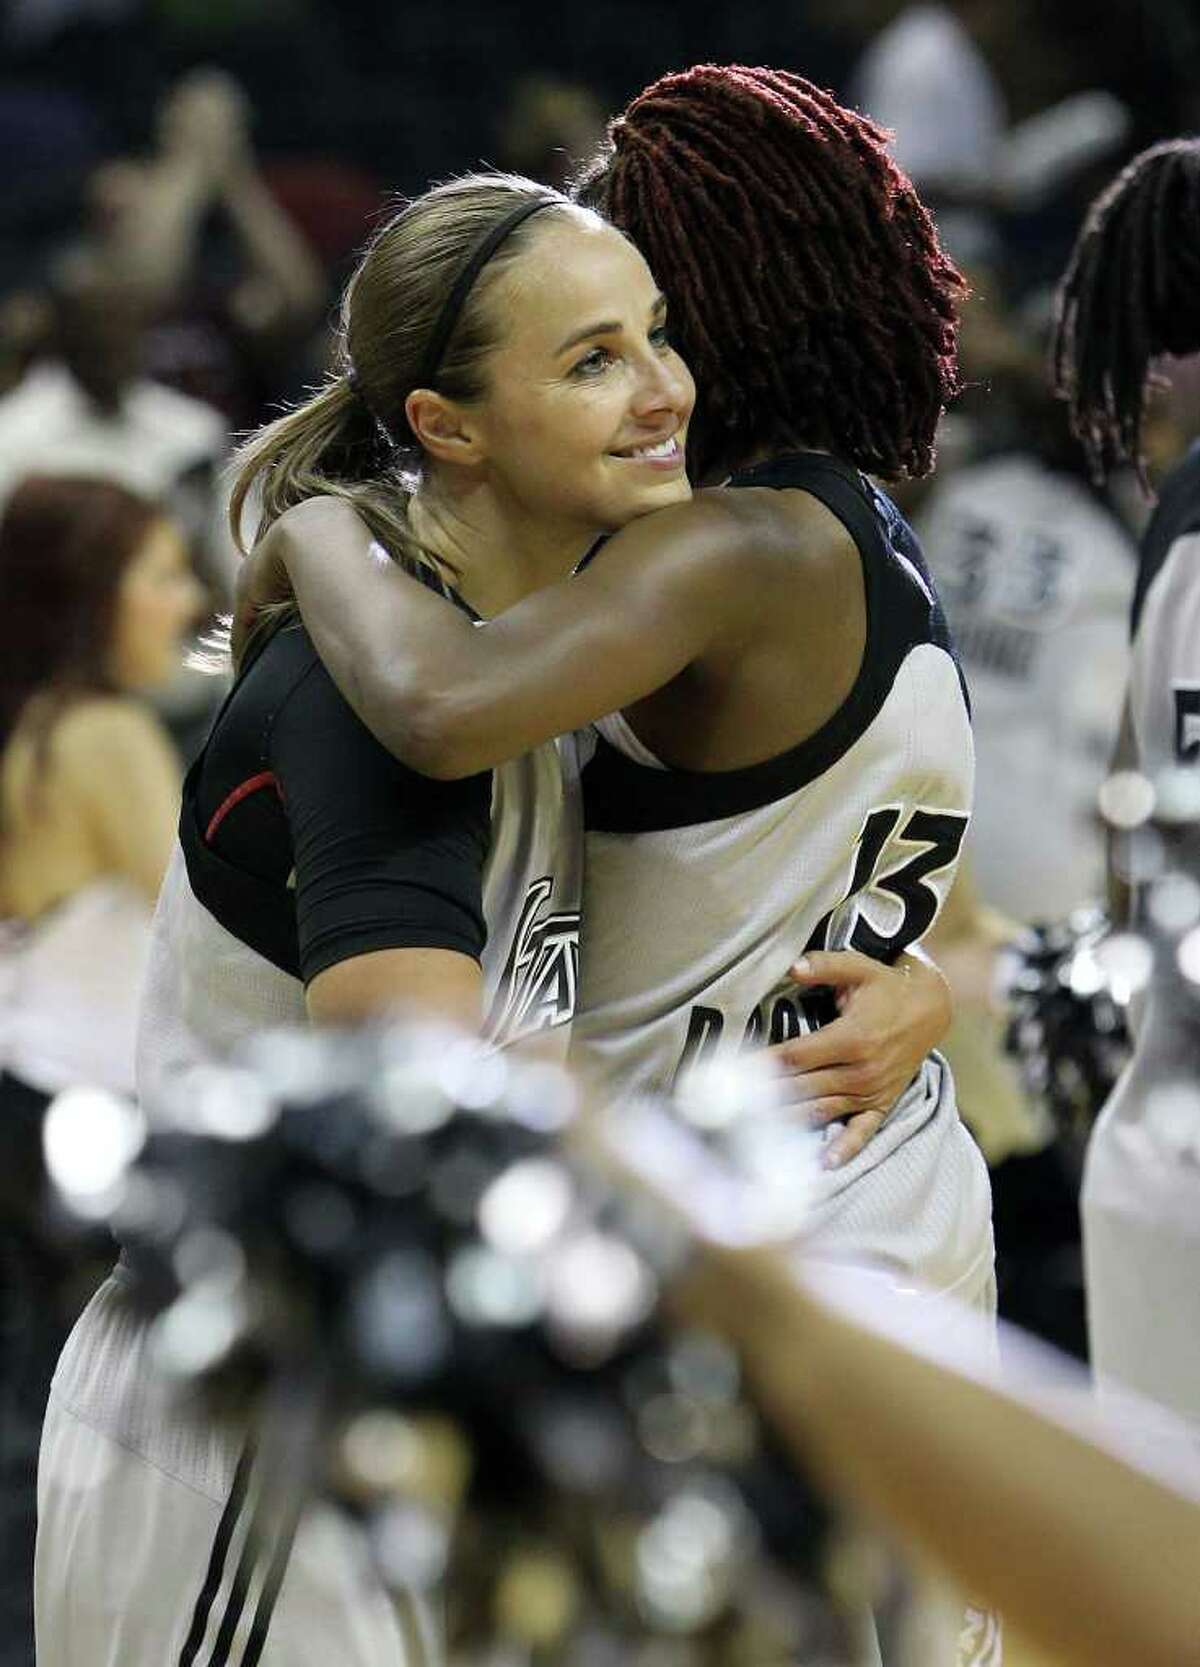 Silver Stars' Becky Hammon (25) gets a hug from teammate Danielle Robinson (13) after the Silver Stars defeated the Connecticut Sun, 78-66, at the AT&T Center on Tuesday, August 30, 2011. Hammon scored 16 points to surpass the 5,000 career point mark. Kin Man Hui/kmhui@express-news.net